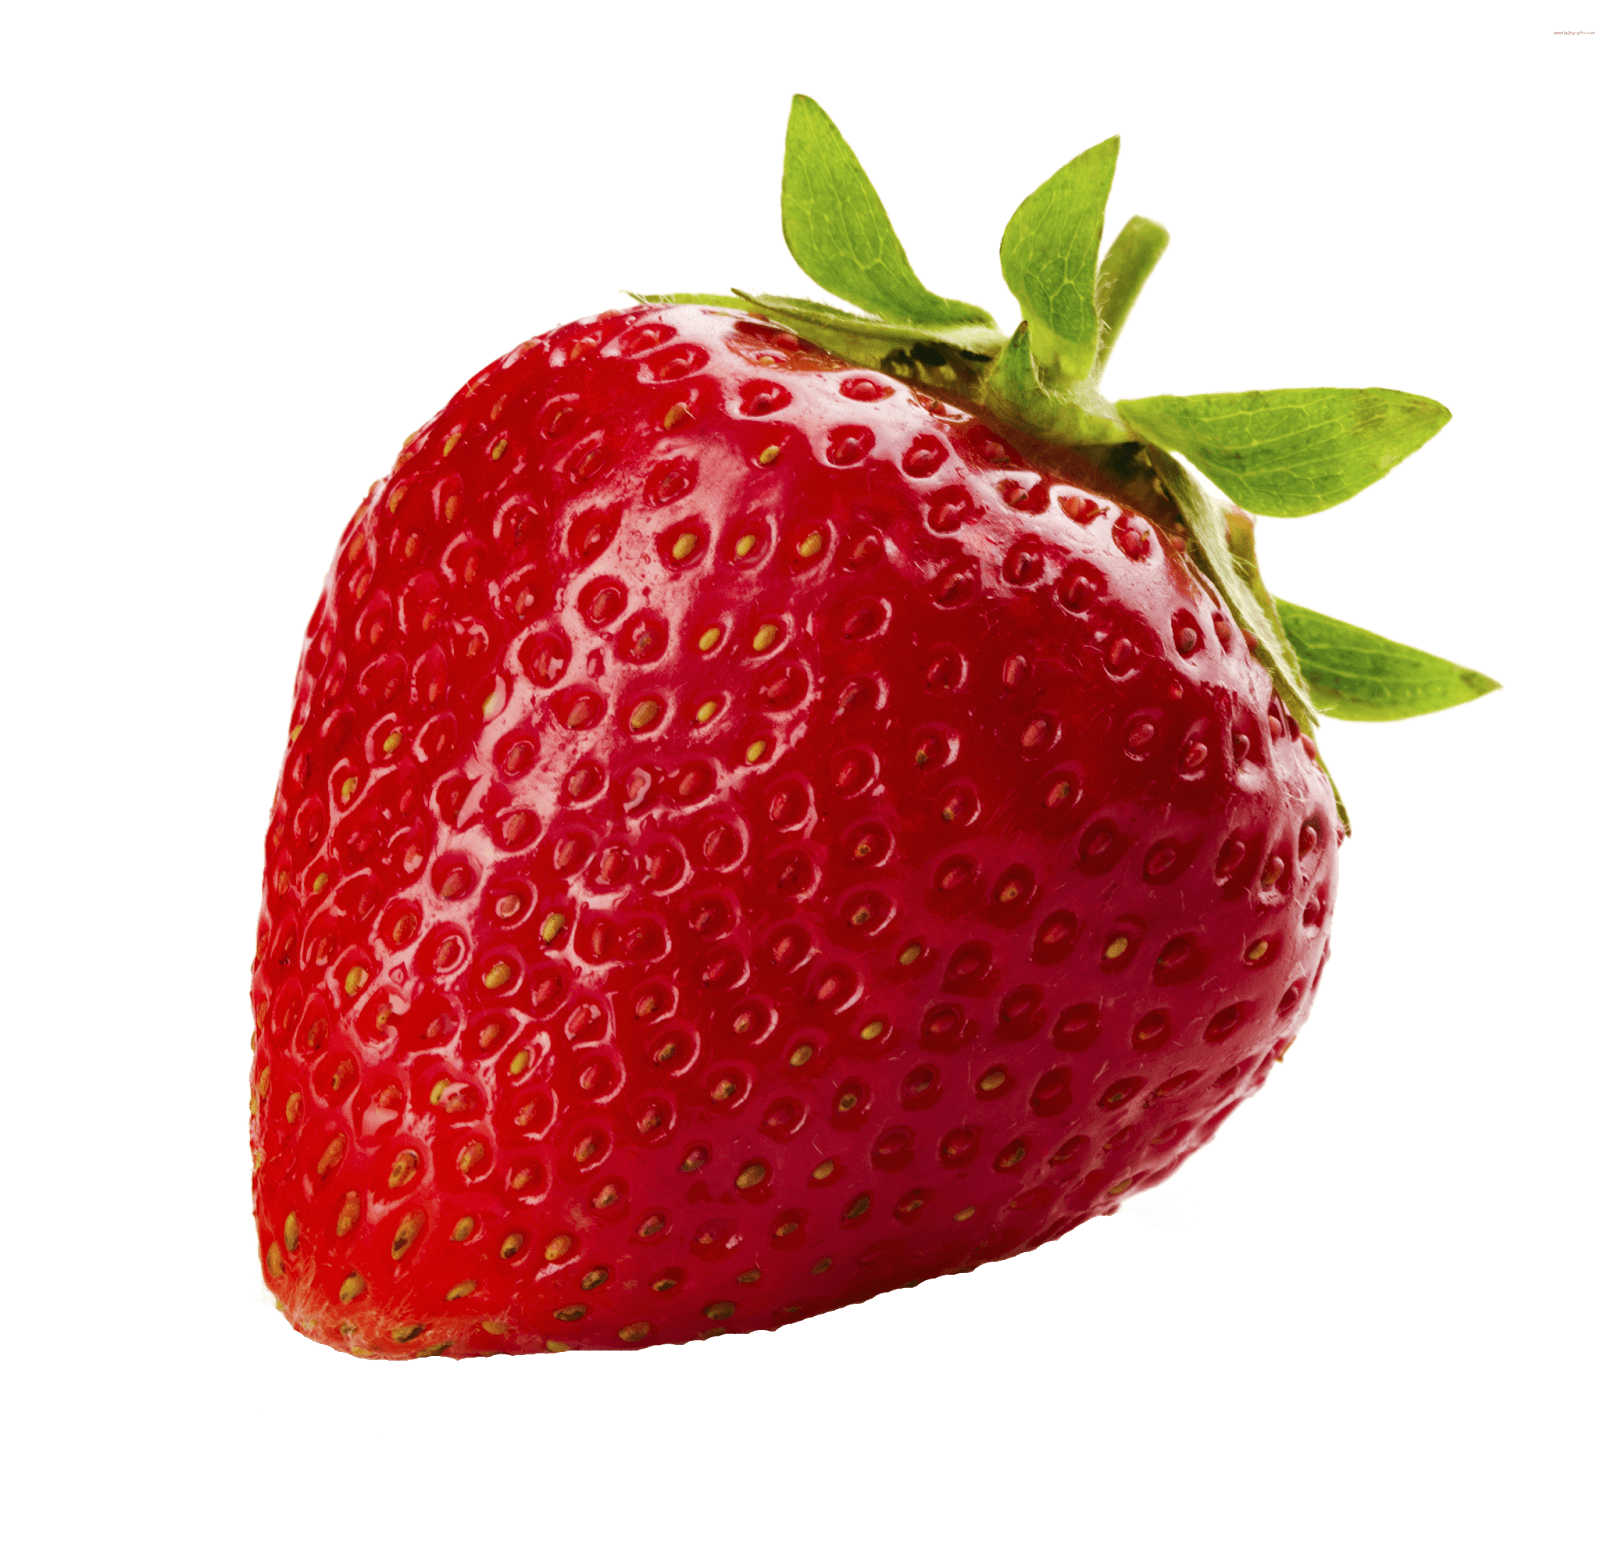 Sweet, juicy strawberries are treats when right off the plant. Supermarket berries tend to be tart with grainy texture; this is because the natural sugar in the berries begins converting to starch as soon as it is plucked from the plant.